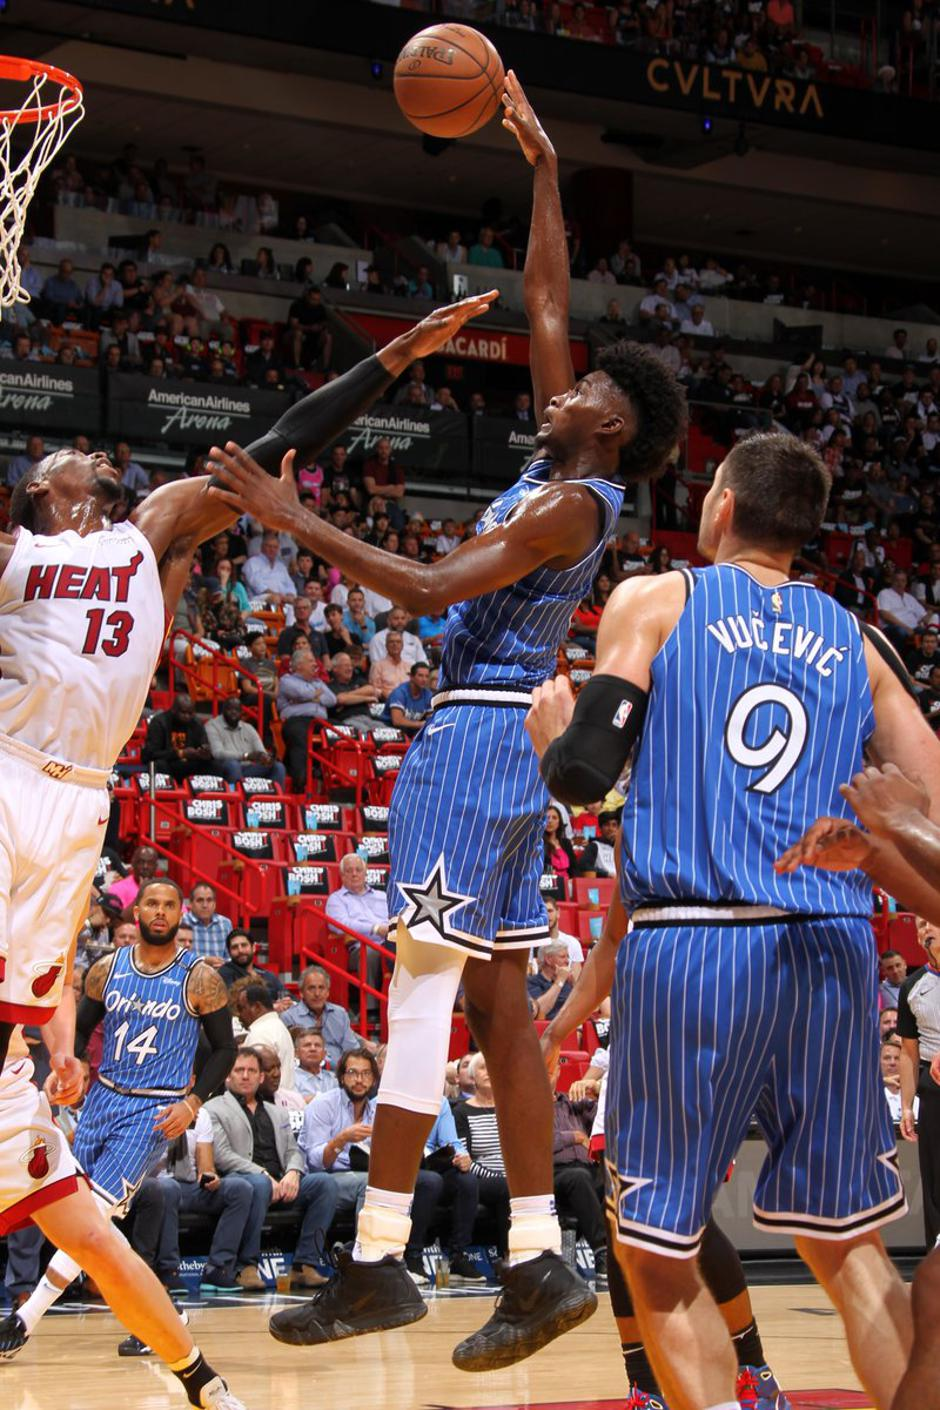 Miami Heat Magic | Avtor: Twitter